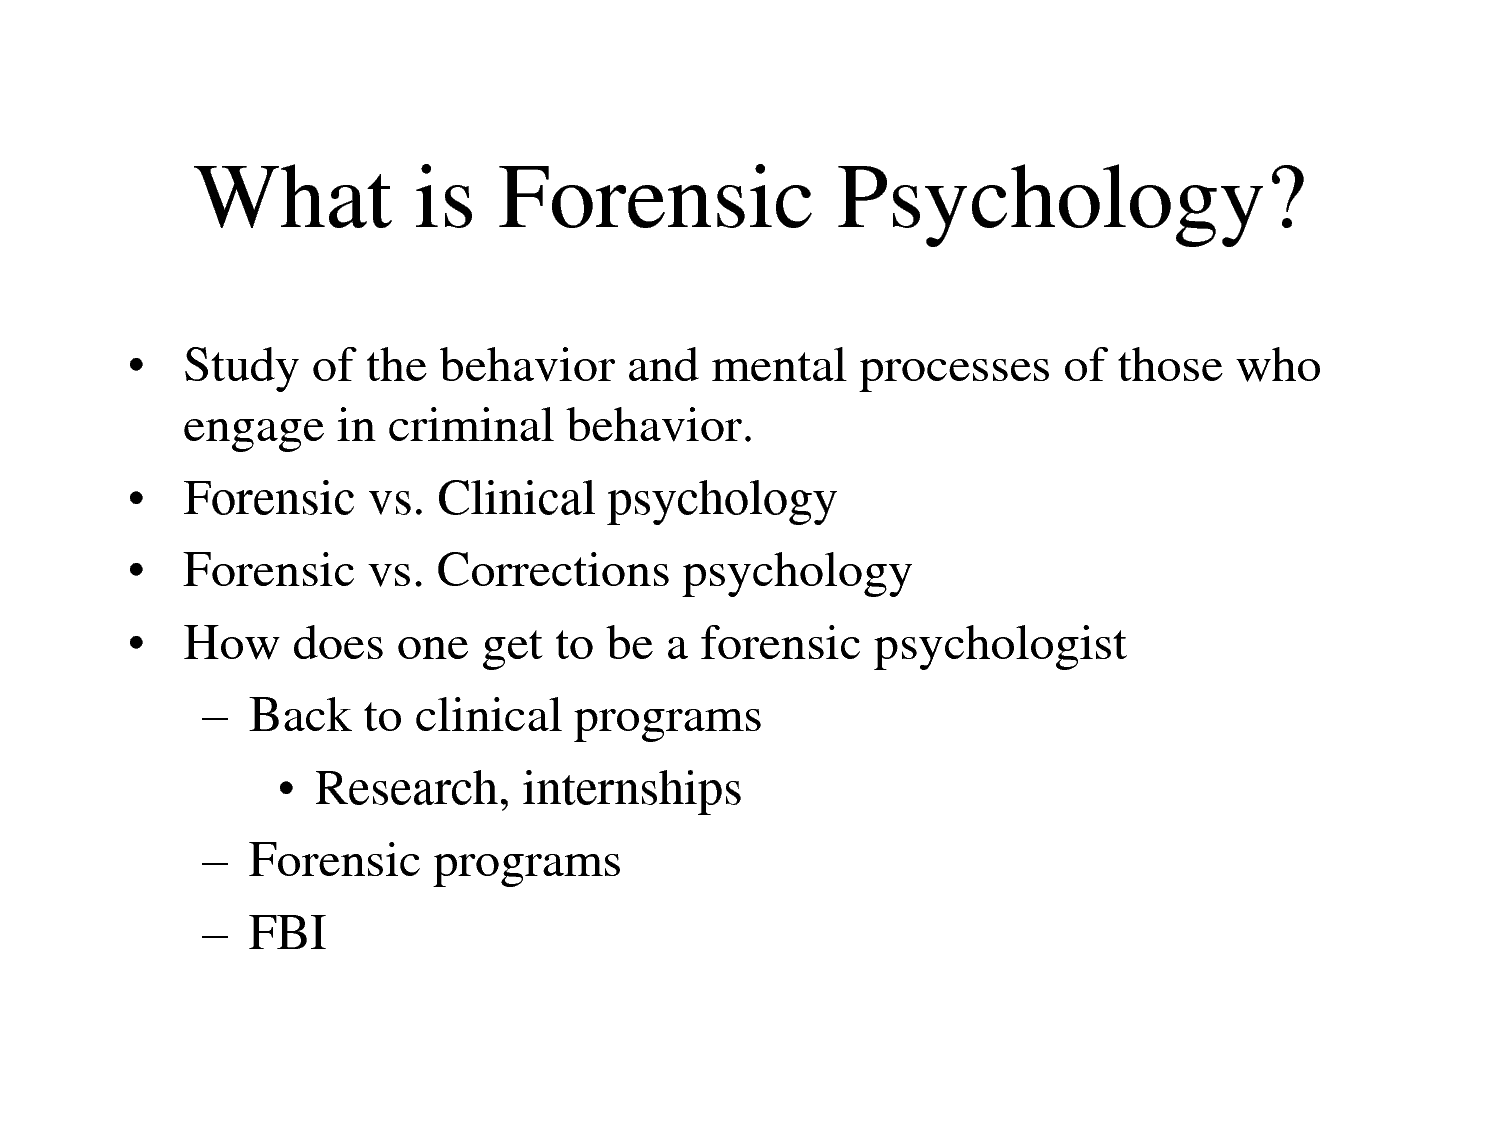 Forensic Psychology Quotes Quotesgram. How To Lower Interest Rates On Student Loans. House Cleaning Charlottesville. National Court Reporter Delta Air Conditioning. Progressive Car Insurance Policy. Laptop With Displayport Car Donation Veterans. Best Electronic Fax Service Dental Check Up. Garage Door Repair Indianapolis Indiana. Lansing Mason Ambulance Dish Network Location